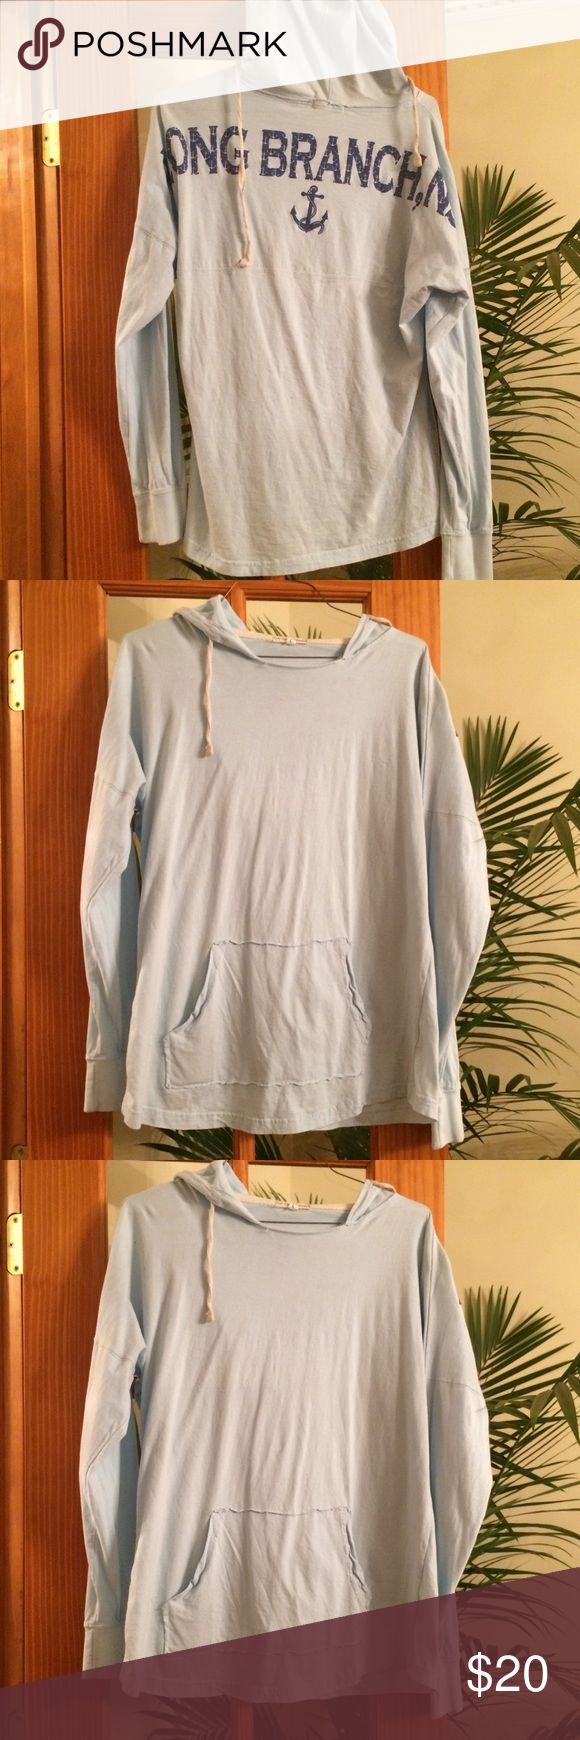 Light Blue NJ Beach Sweatshirt Hoodie Bring a bit of the Jersey Shore to your door with this comfortable, slightly distressed hooded light weight sweater. Long branch, NJ is a very popular & lovely beach where so many families vacation year after year! Size: L - Color: Light Blue - Used: Twice 🌟🌟🌟🌟🌟BUY THIS HOODIE TODAY I WILL INCLUDE THE HOLLISTER BRACELET FOR FREE! Sorry No Trades! Too Cool Crew Tops Sweatshirts & Hoodies